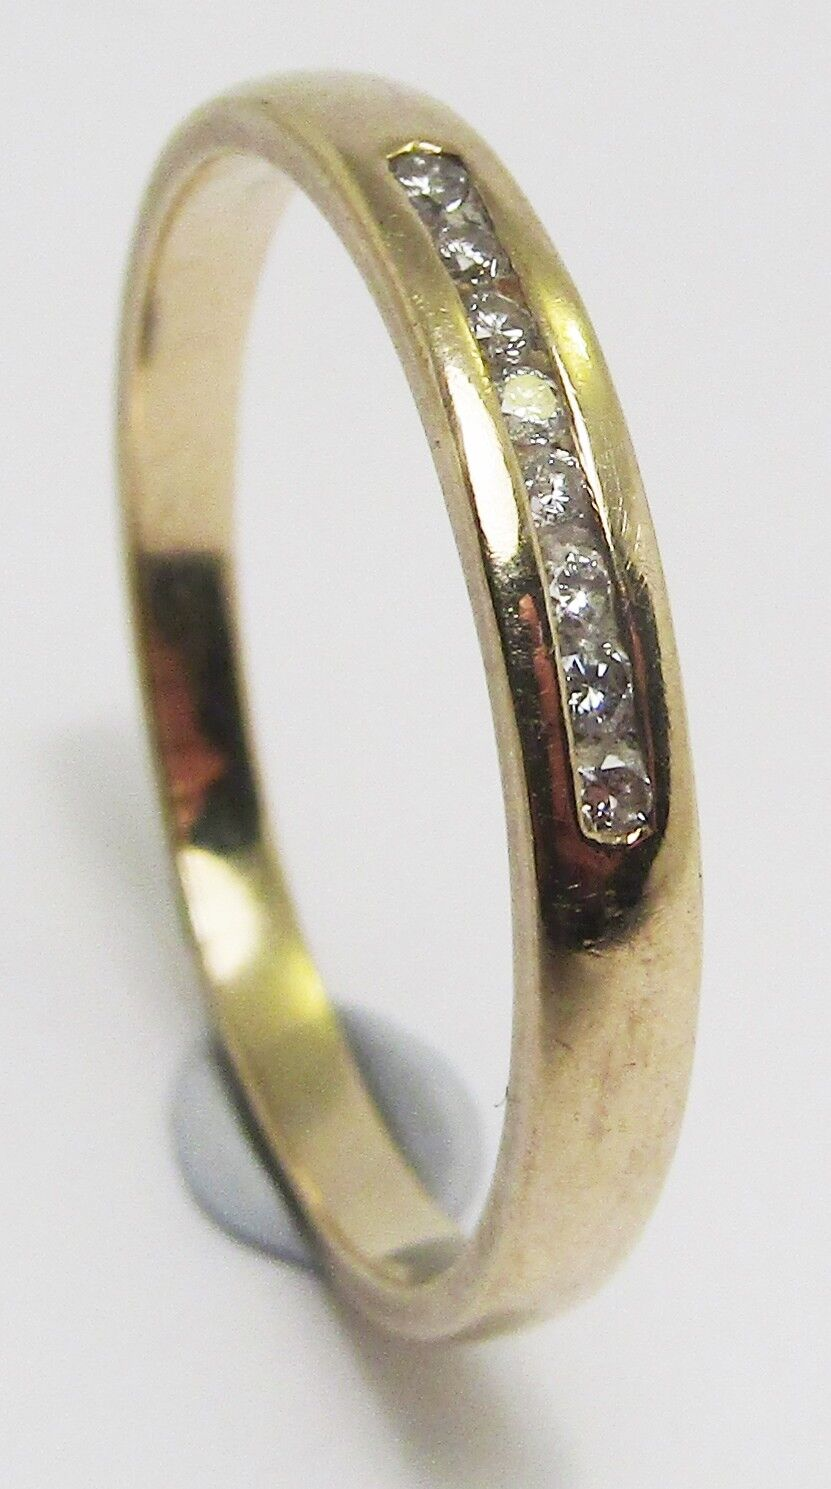 100% Genuine Vintage 9ct  Solid Yellow gold 0.04cts Diamond Eternity Ring Sz 7US